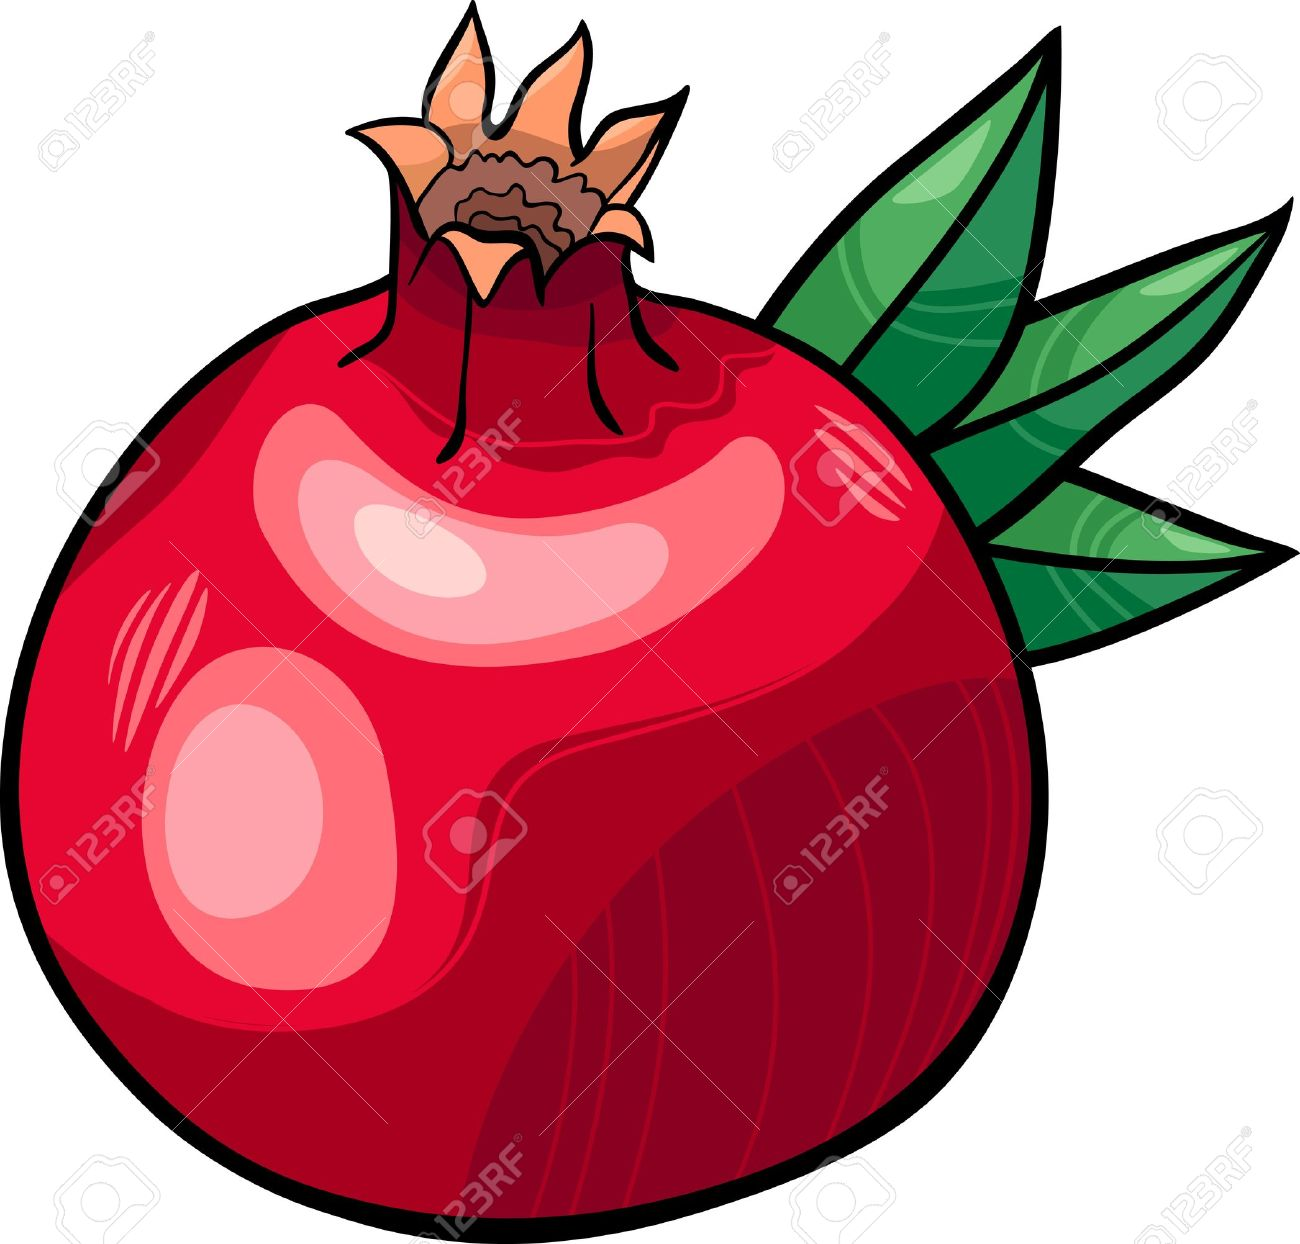 Pomegranate clipart free.